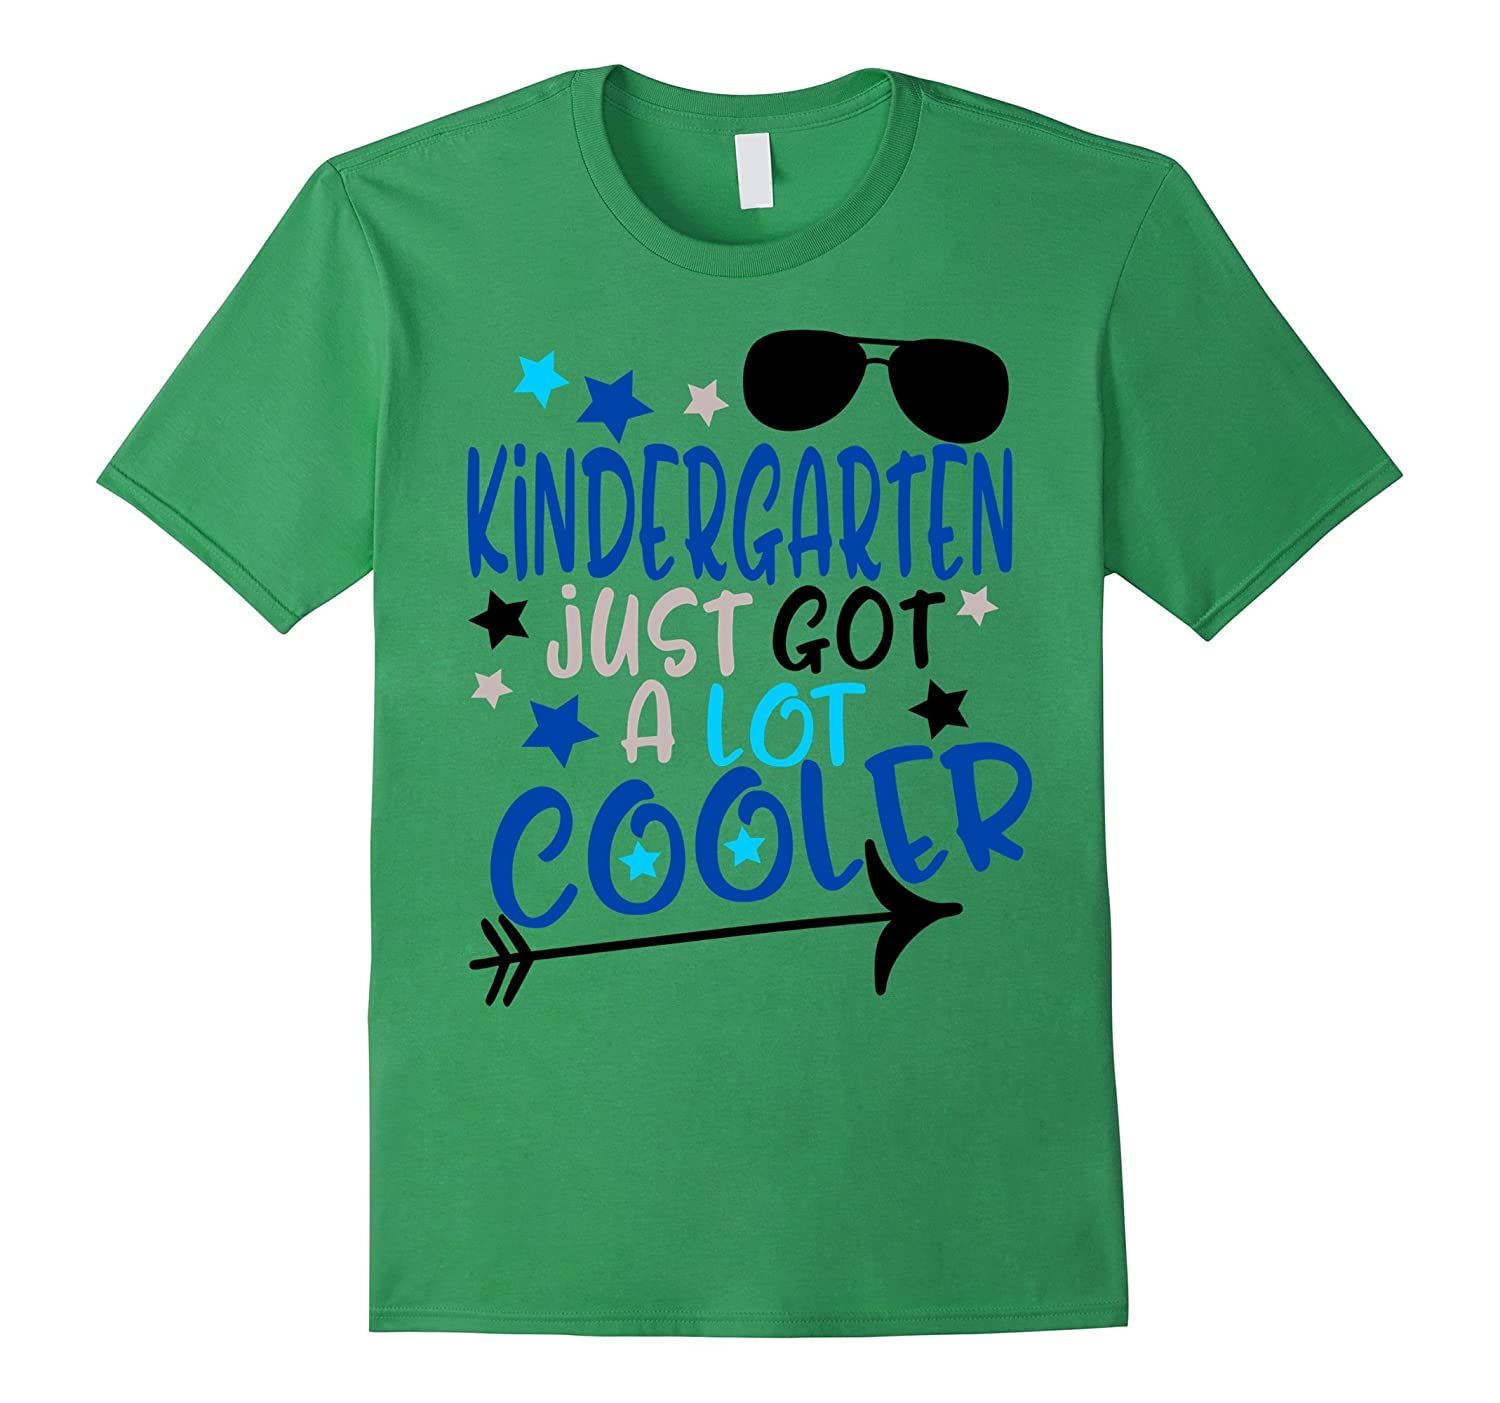 First Day of School Shirt Kids Kindergarten Just Got Cooler-BN